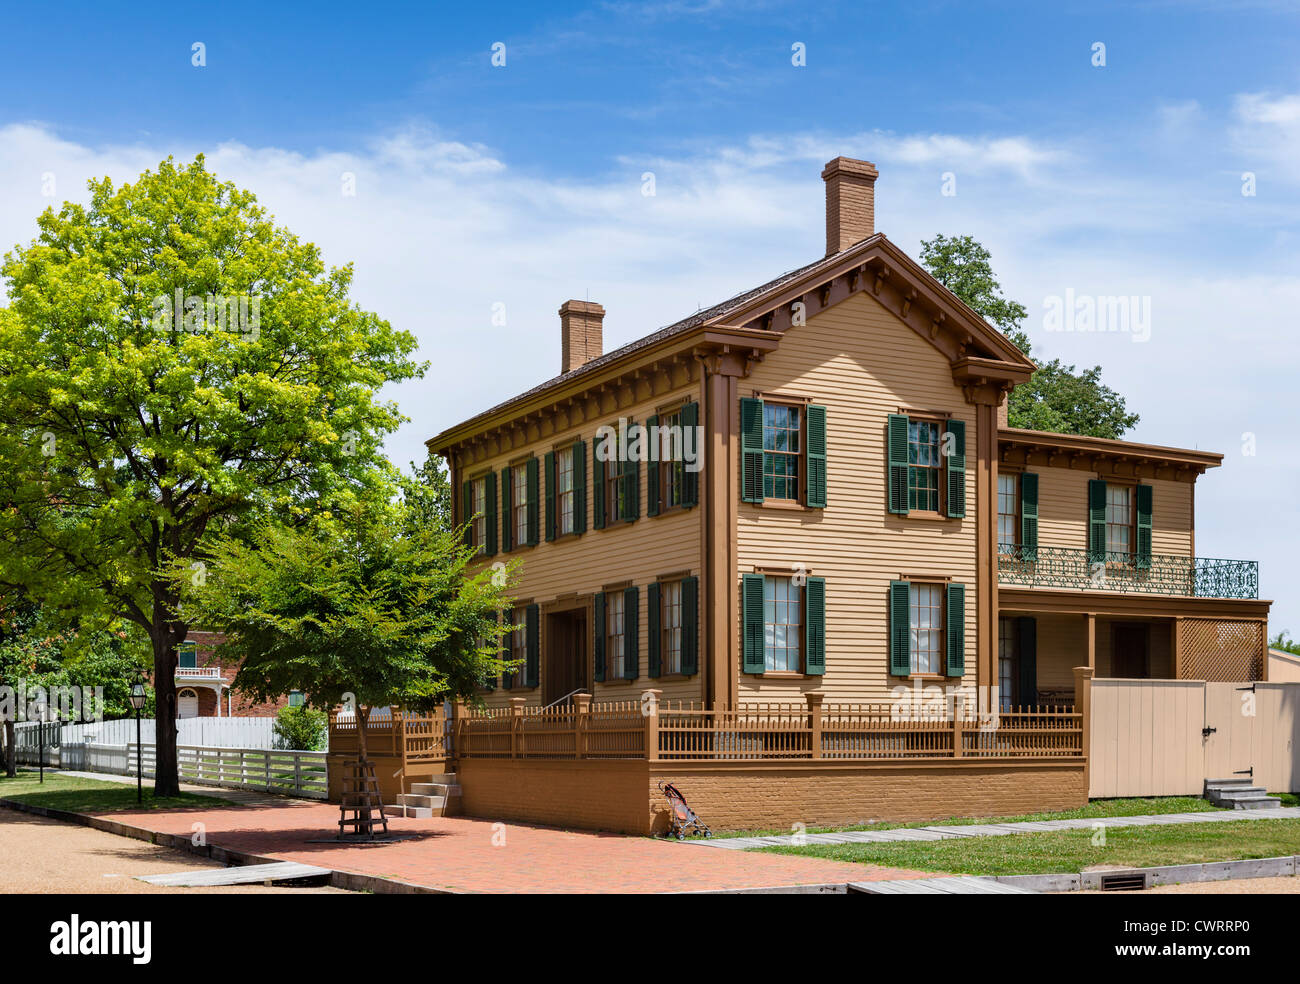 The historic home of Abraham Lincoln in the Lincoln Home National Historic Site, Springfield, Illinois, USA - Stock Image